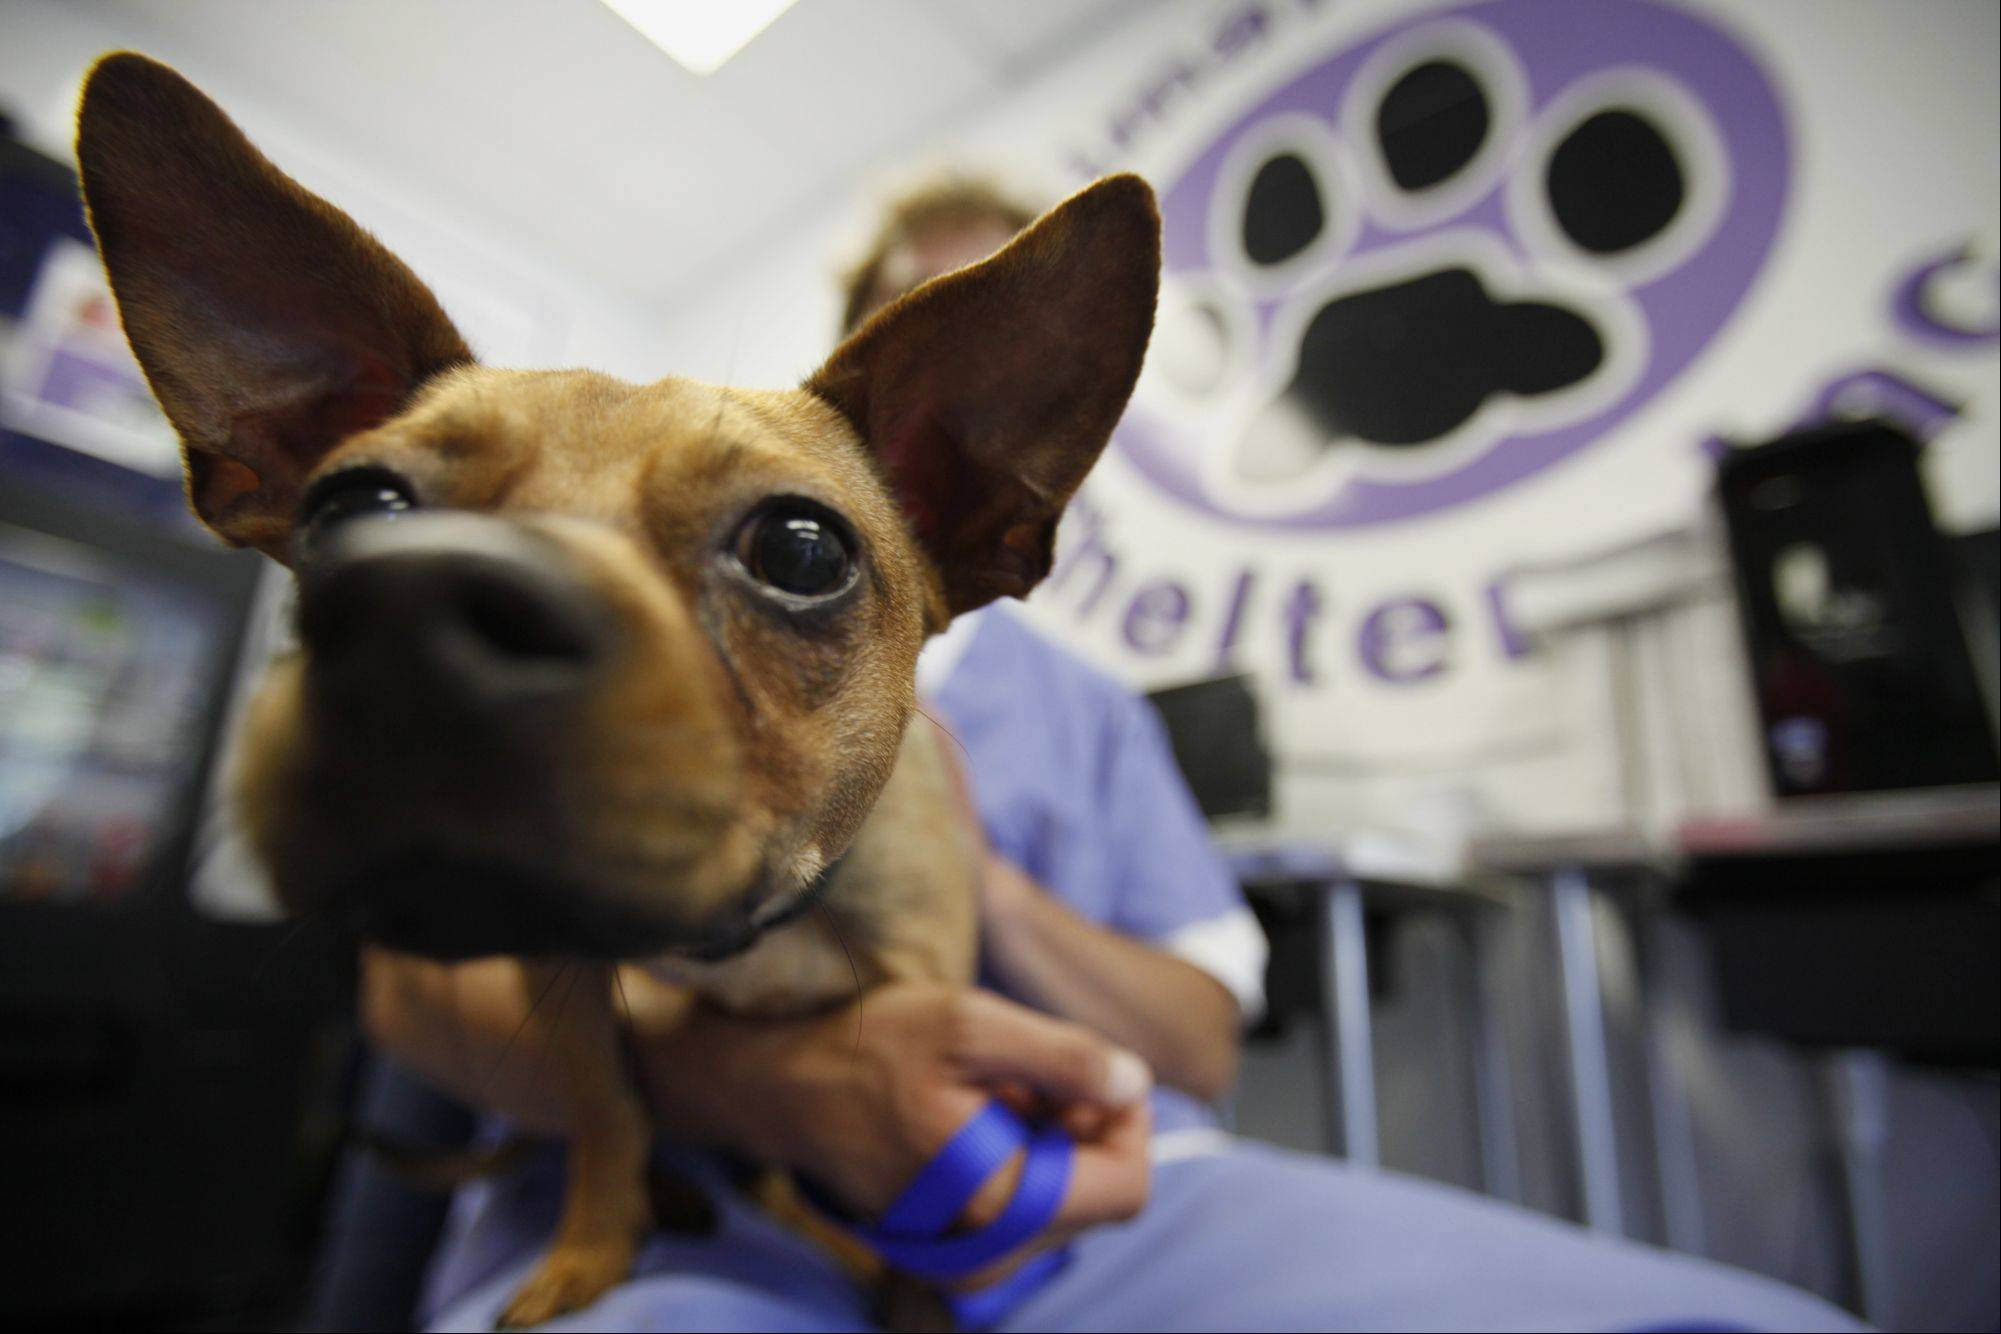 Moseley, a Chihuahua-beagle mix, is one of the dogs available at the Animal House Shelter in Huntley, which is celebrating its 10th anniversary.